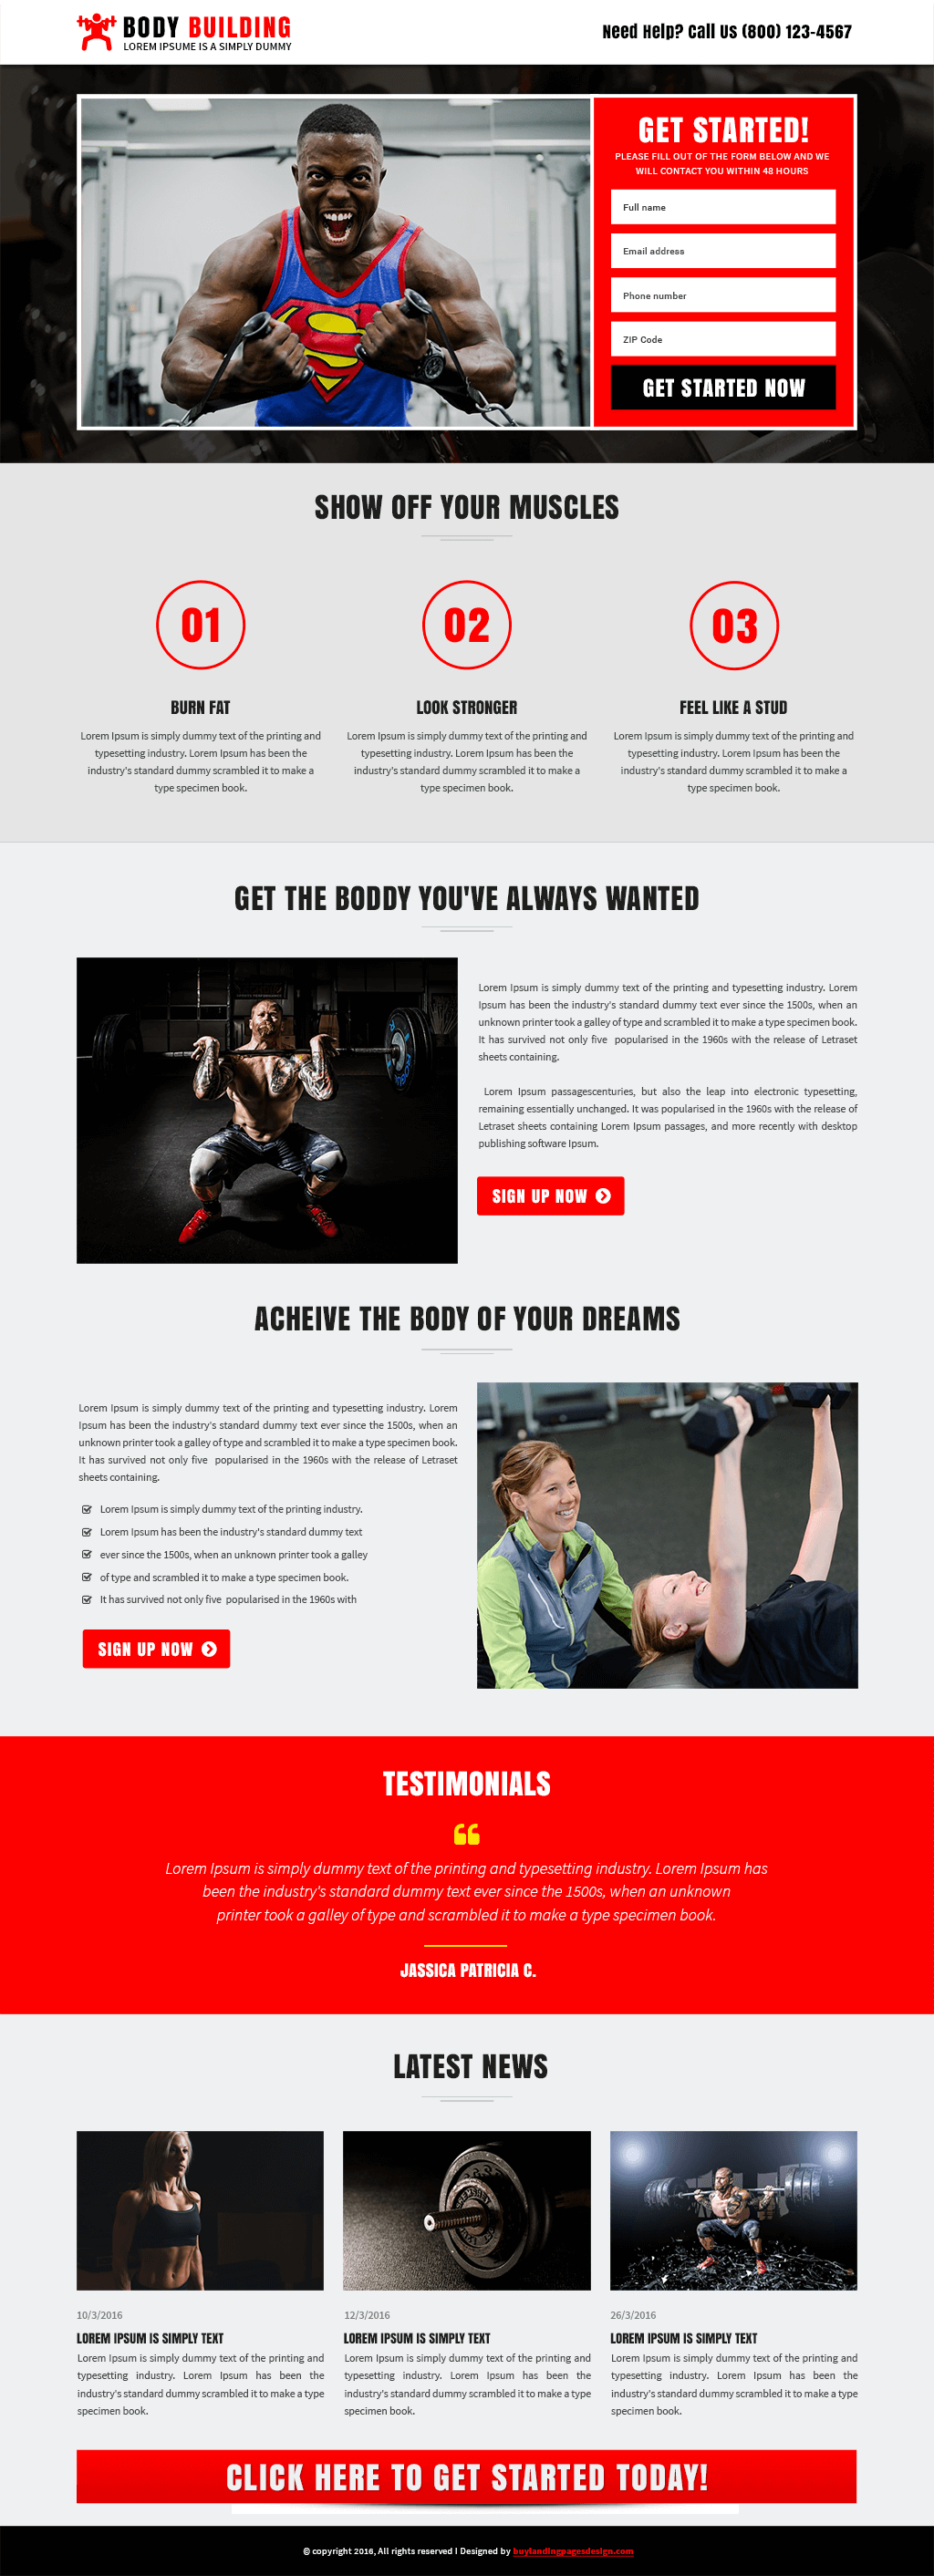 Responsive Fitness Center Landing Page Design Template